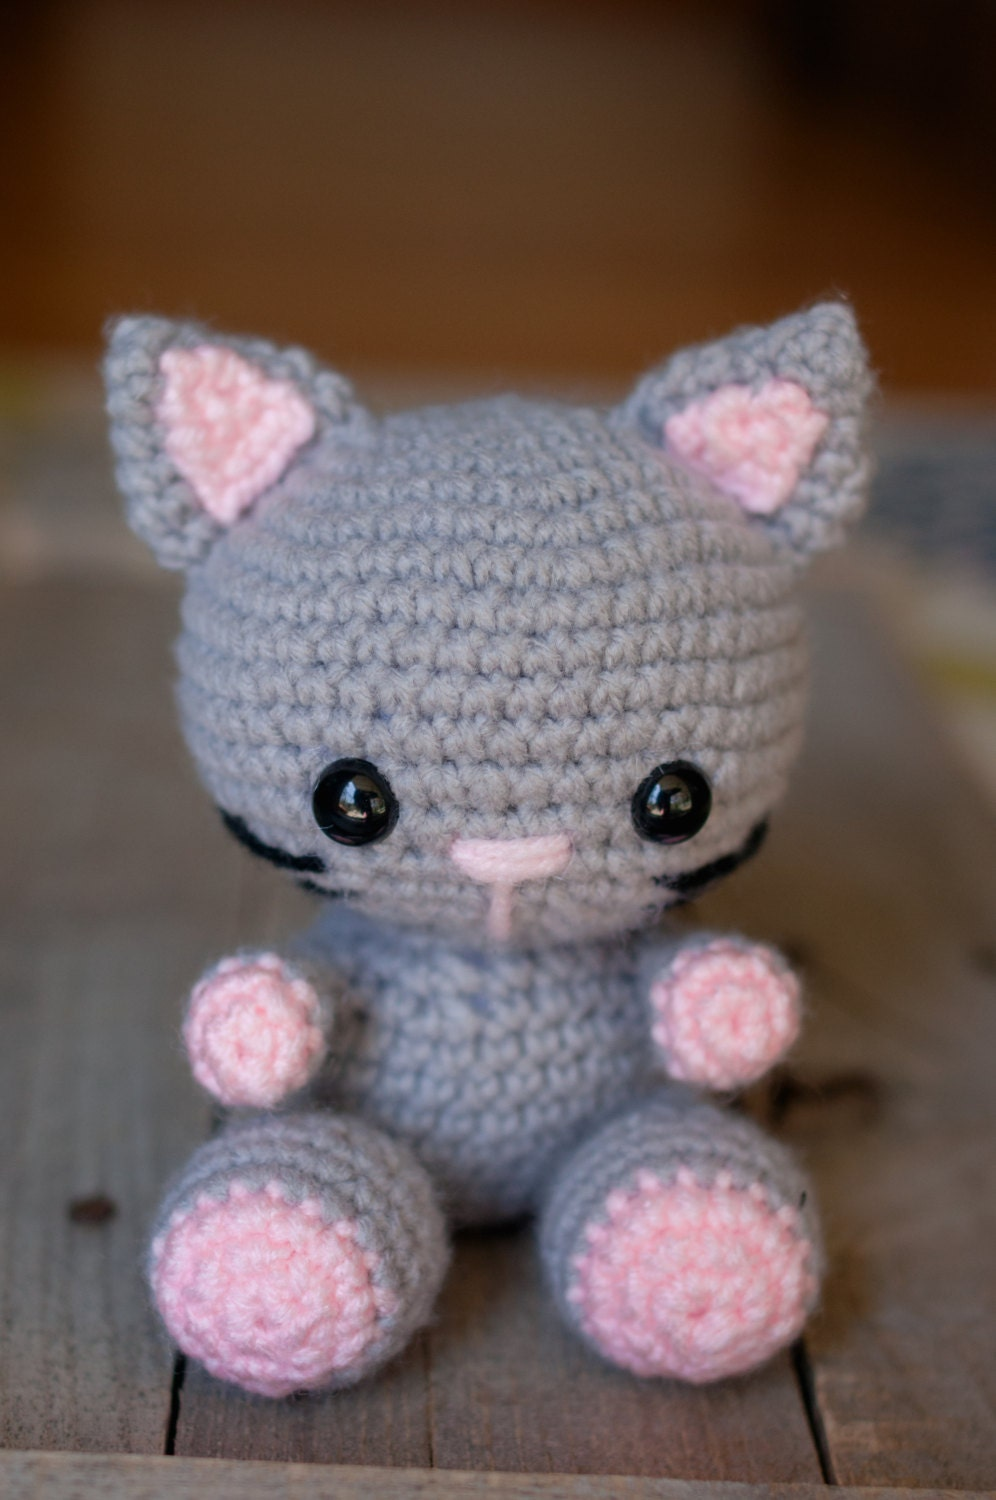 Knitted Amigurumi Cat Pattern : PATTERN: Crochet cat pattern amigurumi cat by ...